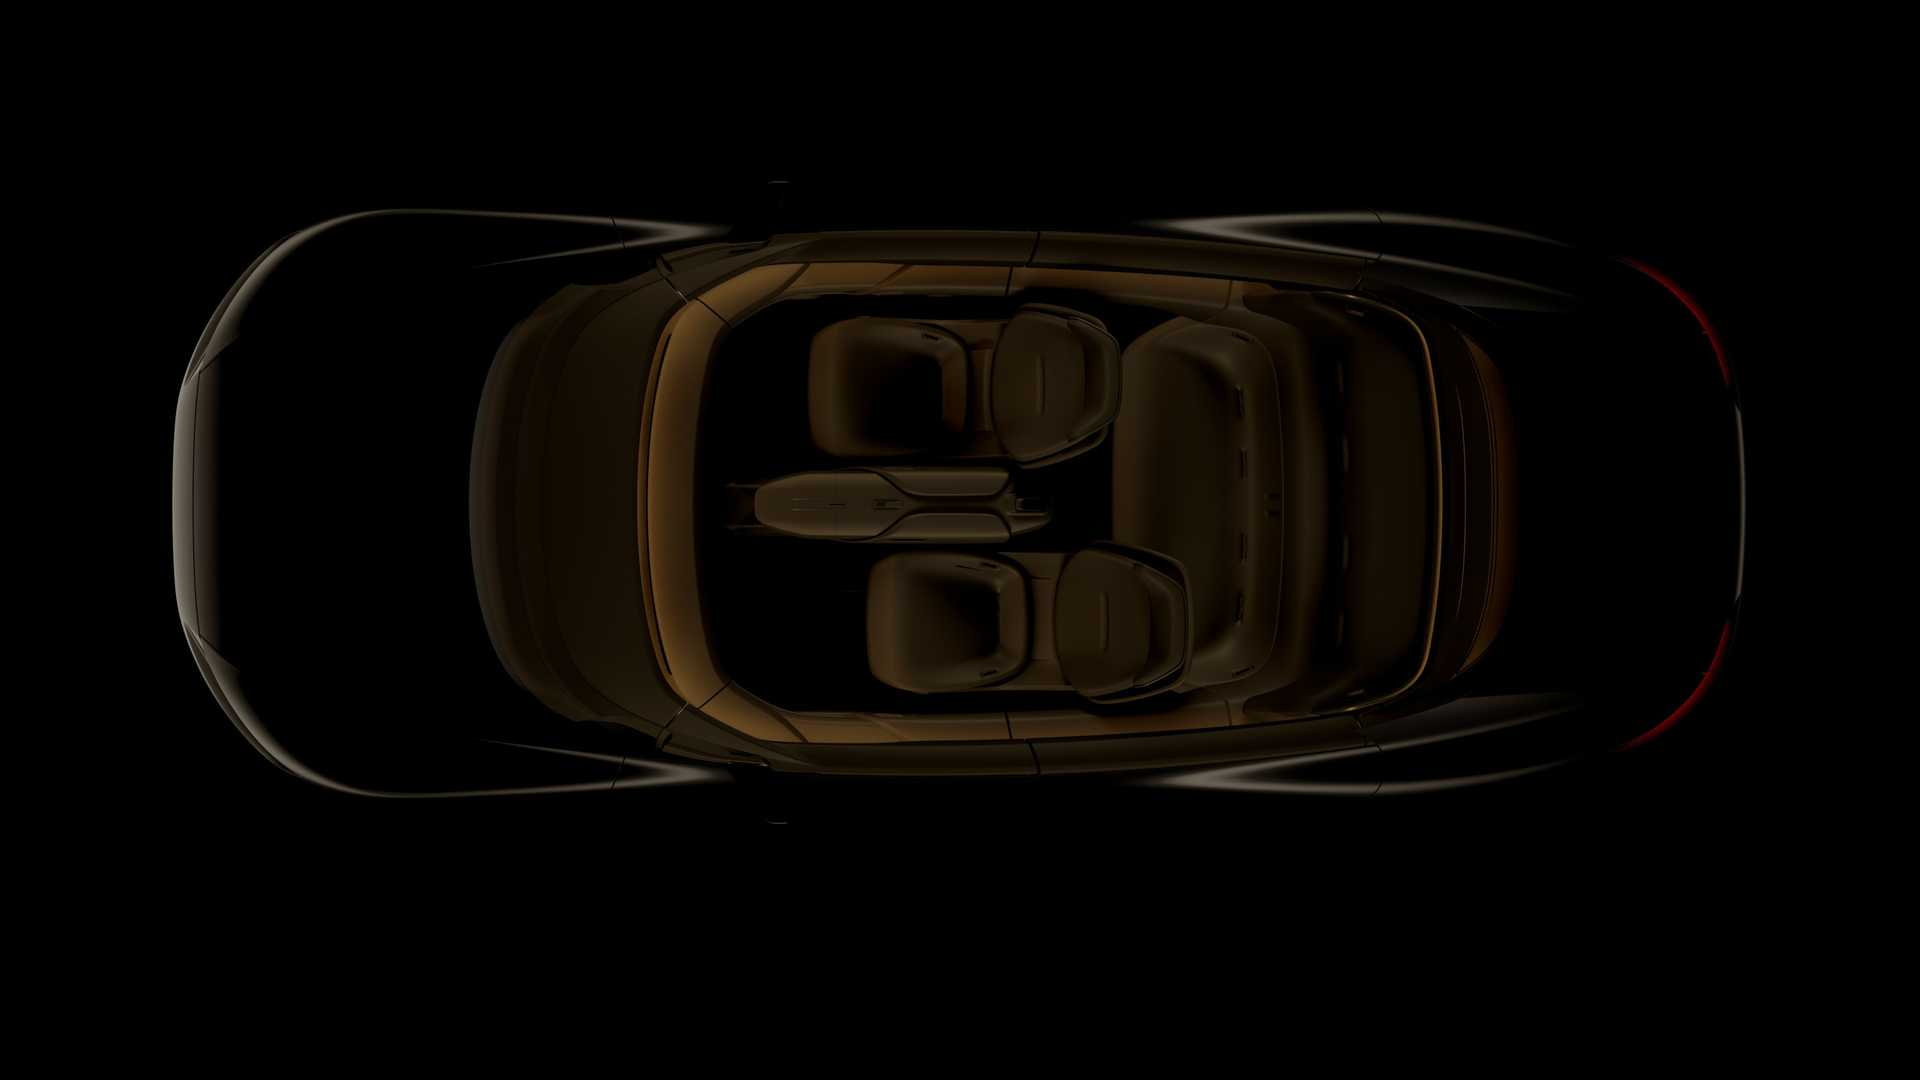 Audi Grand Sphere Concept Teased As Swoopy Electric GT